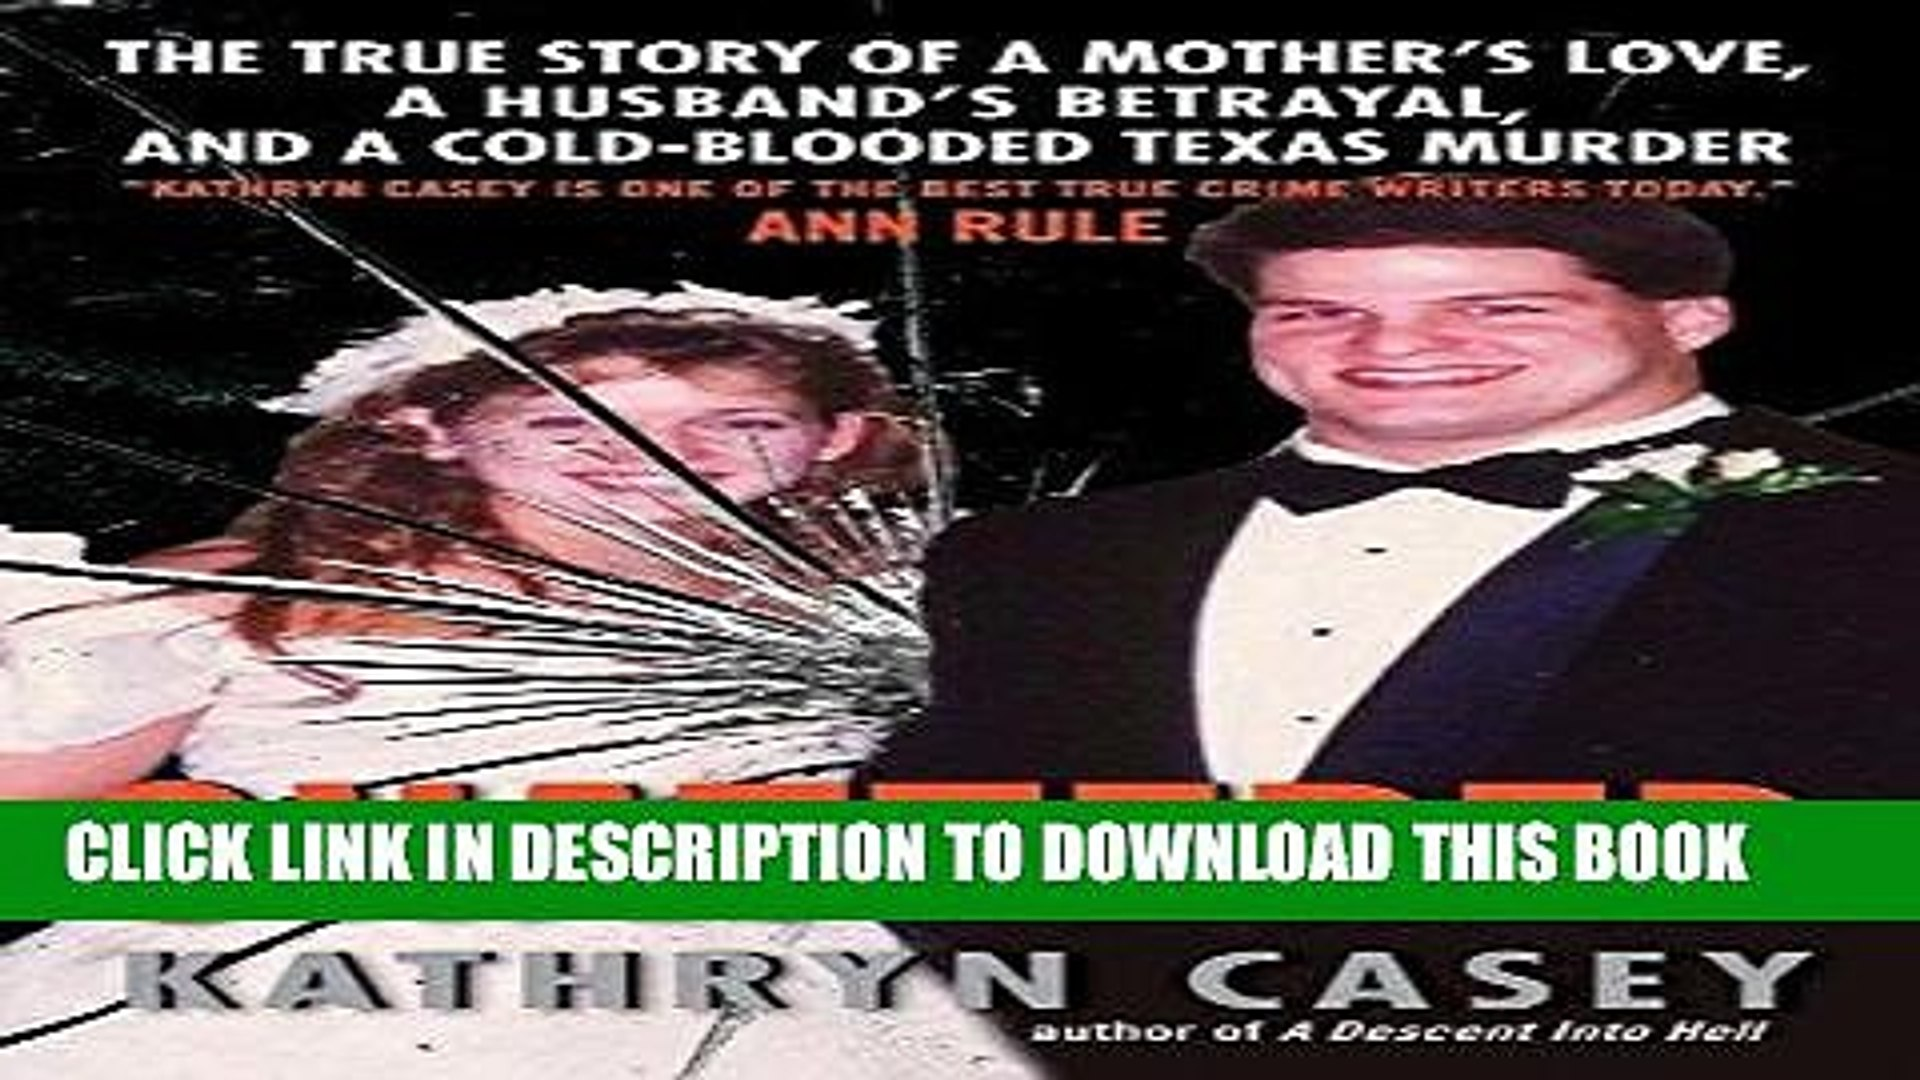 [PDF] Shattered: The True Story of a Mother s Love, a Husband s Betrayal, and a Cold-Blooded Texas